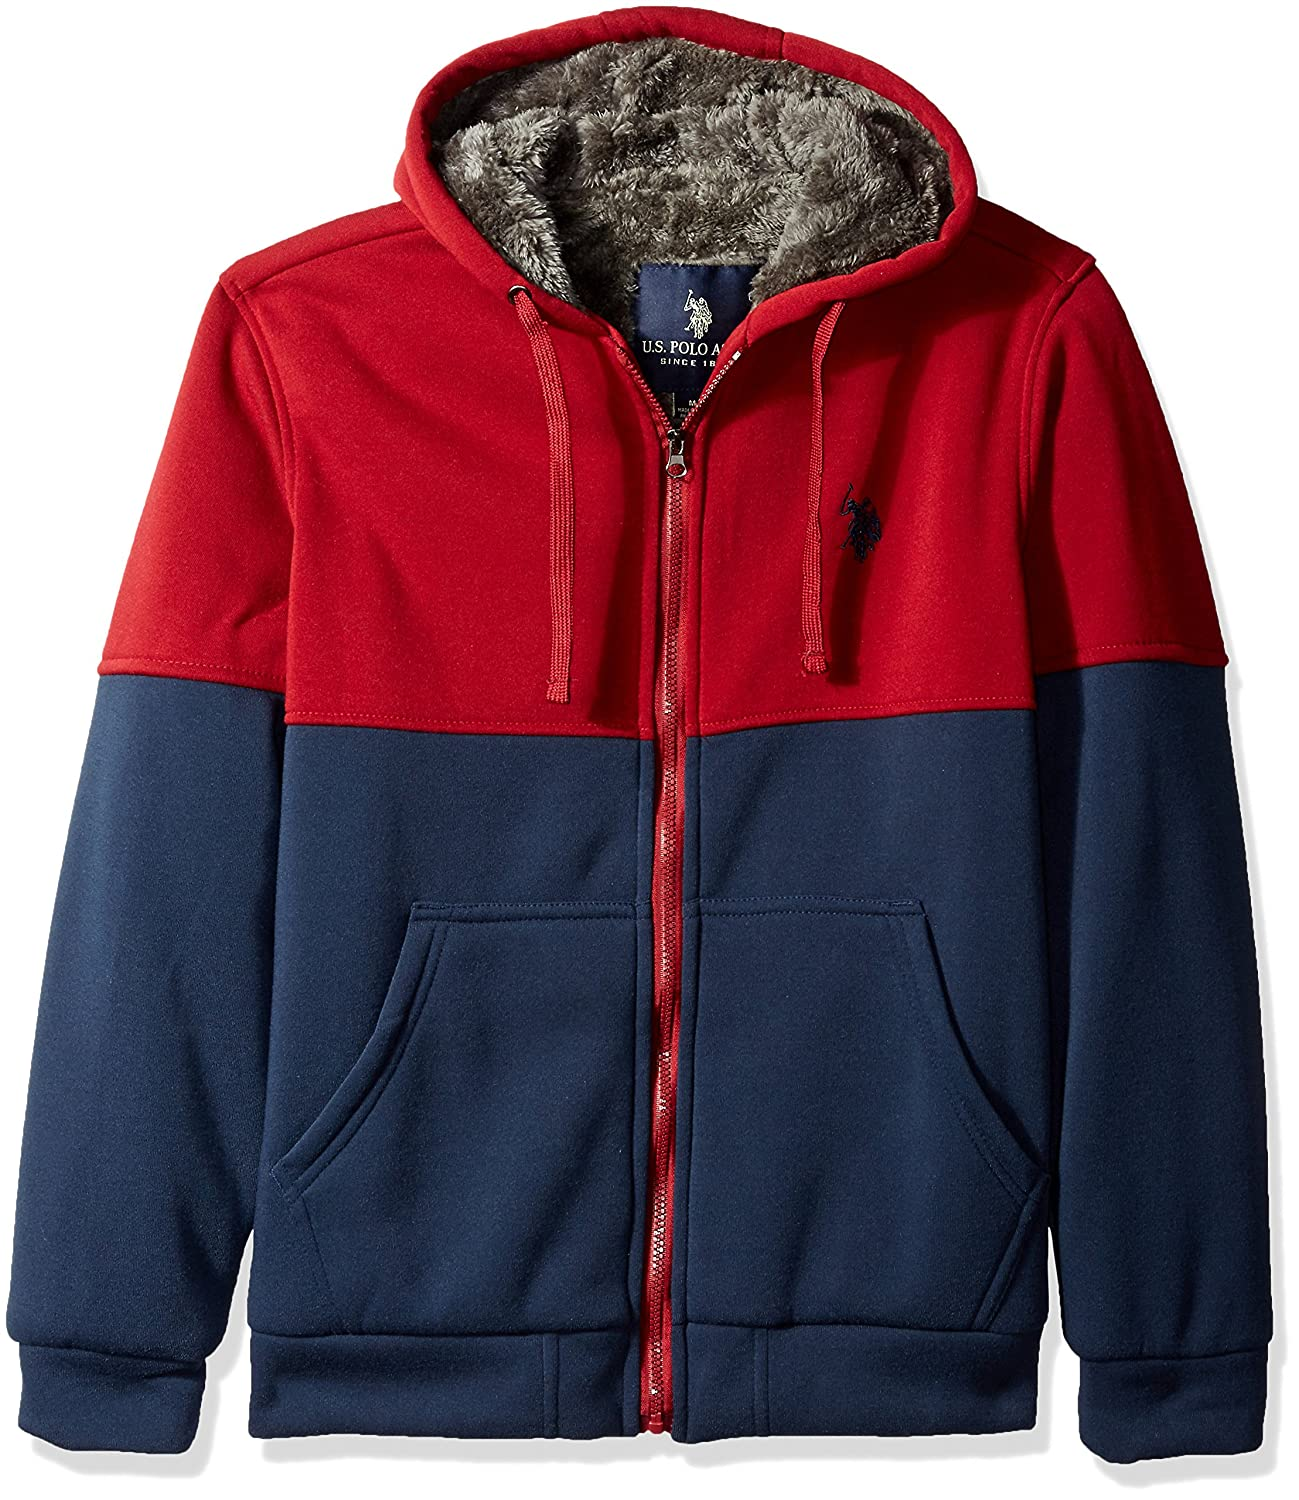 U.S. Polo Assn. Mens Fleece Color Blocked Hoodie with Faux Sherpa Lining 10-6381-K5